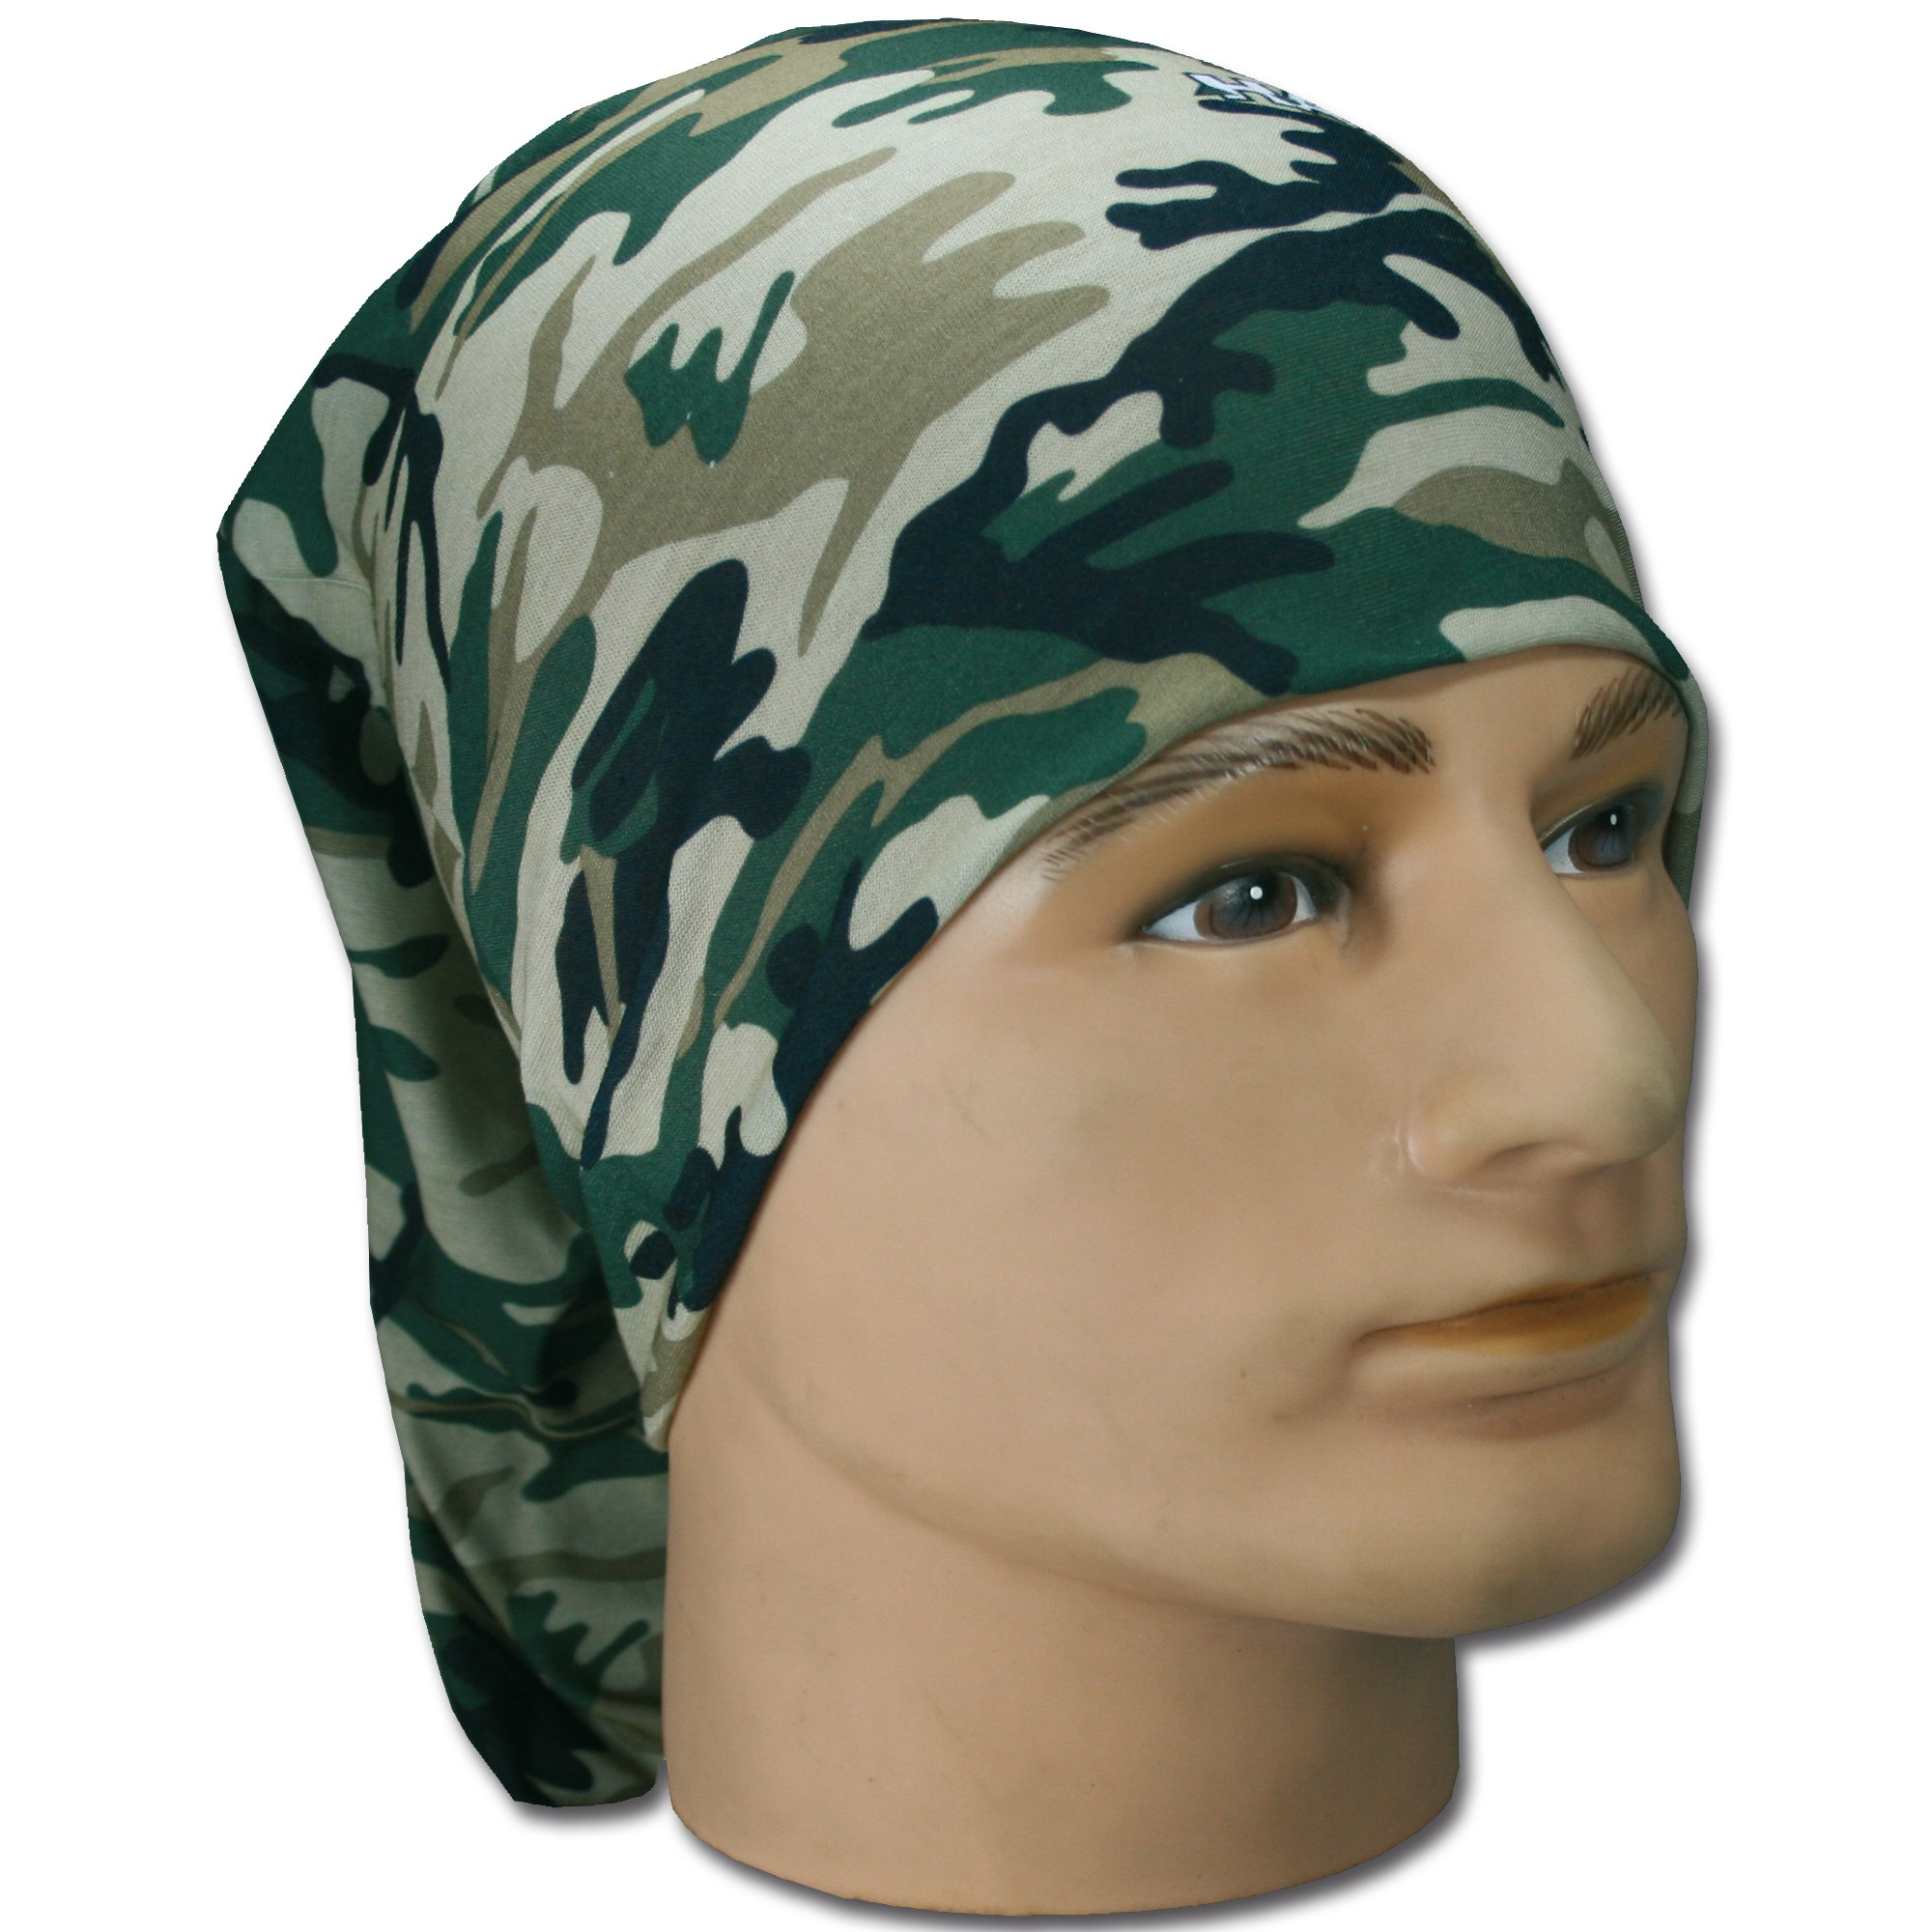 Headwrap HAD camo